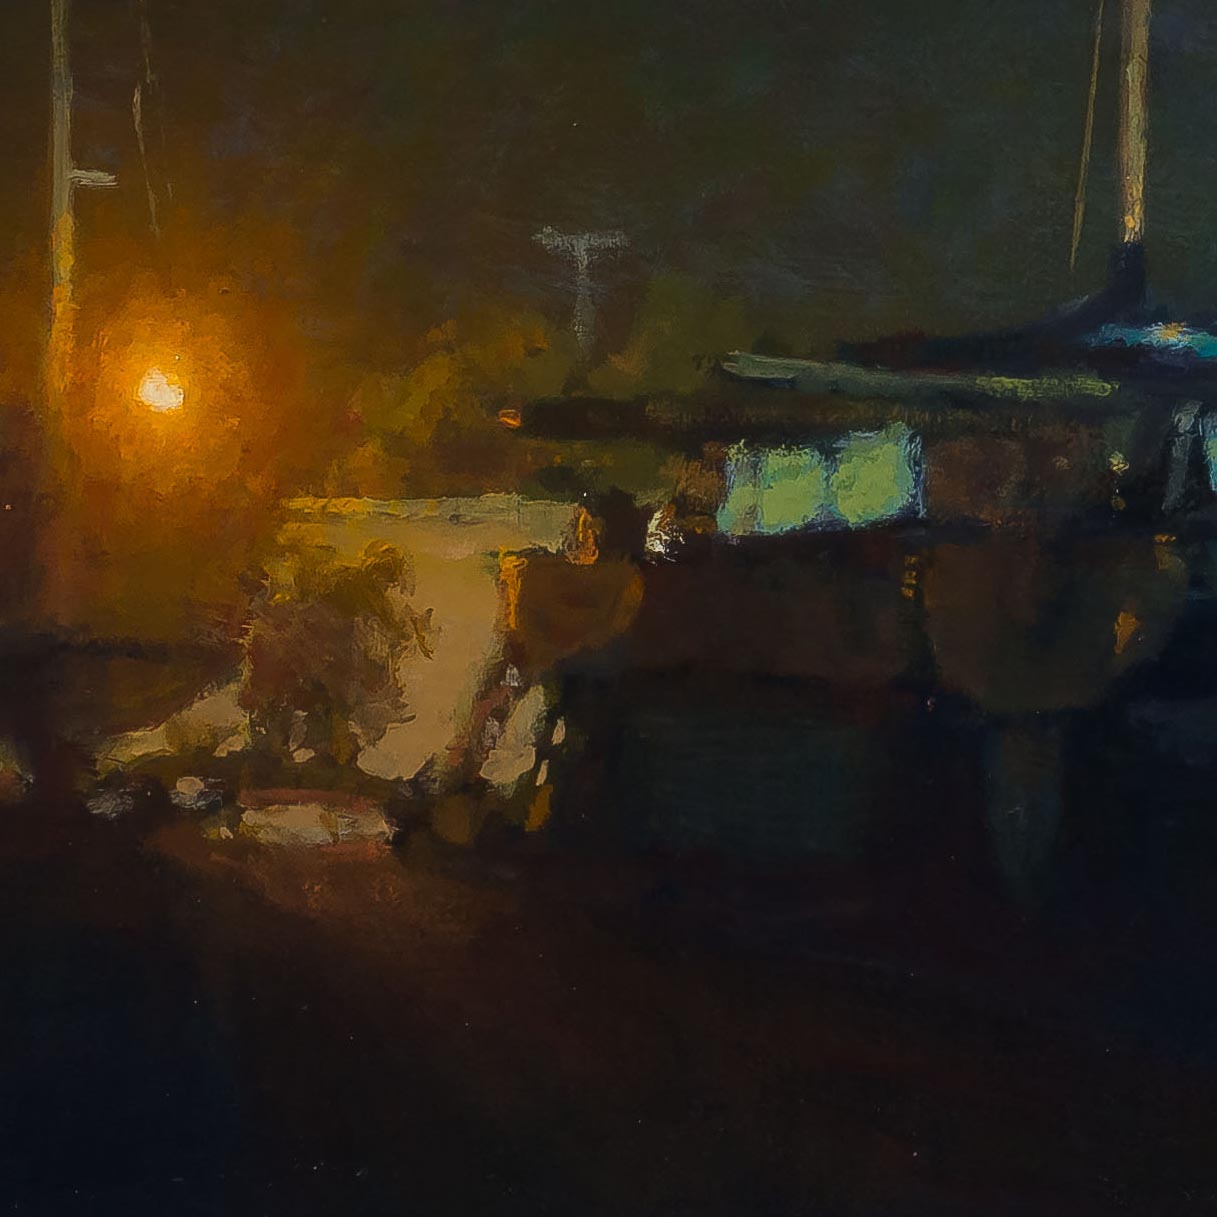 Boatyard - Quarter Moon 12x24-painting byCarl Bretzkephotographed by Mitch Rossow-detail